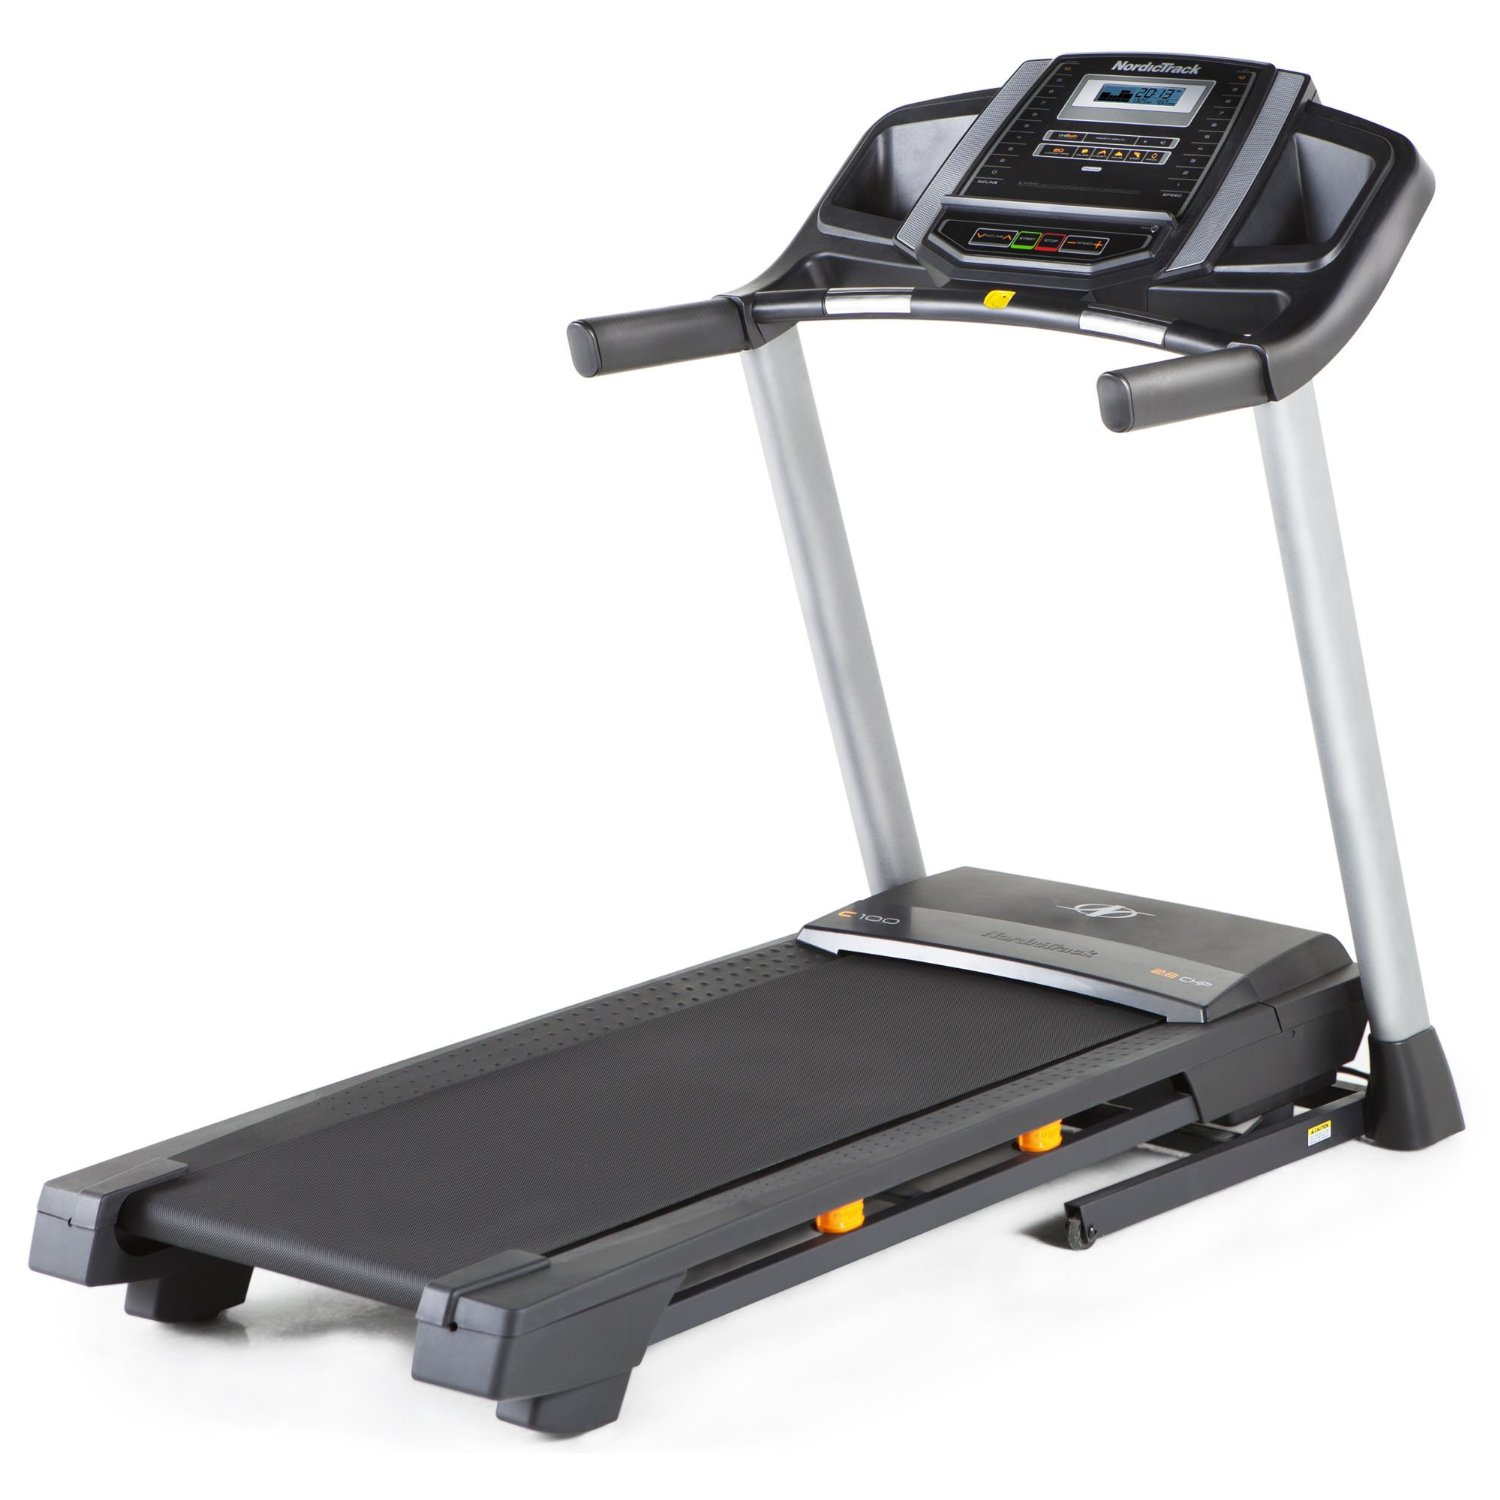 Horizon Fitness Treadmill Display Not Working: NordicTrack C100 Treadmill Review